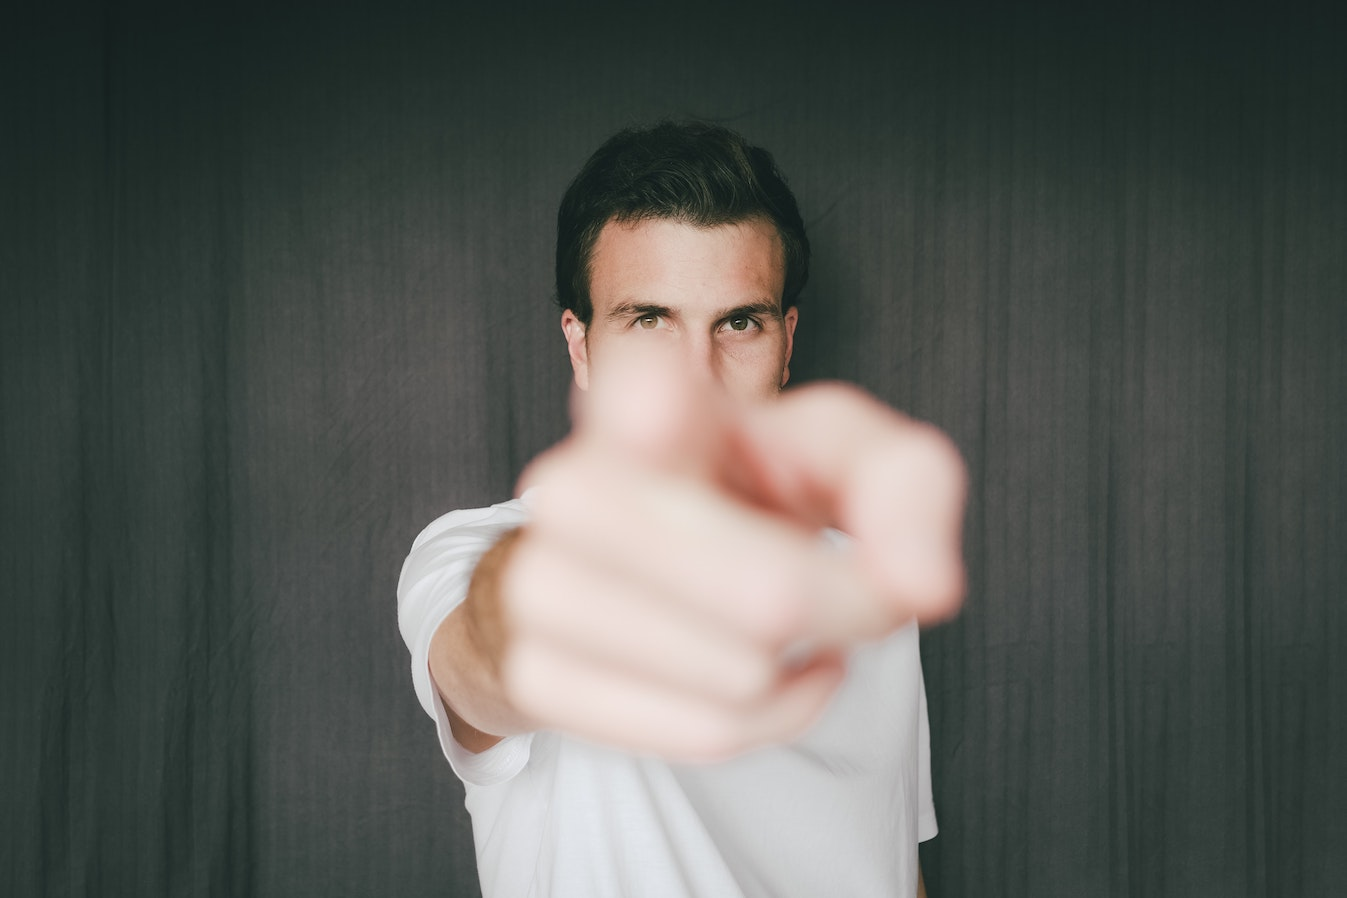 A man in a white tee pointing at the camera